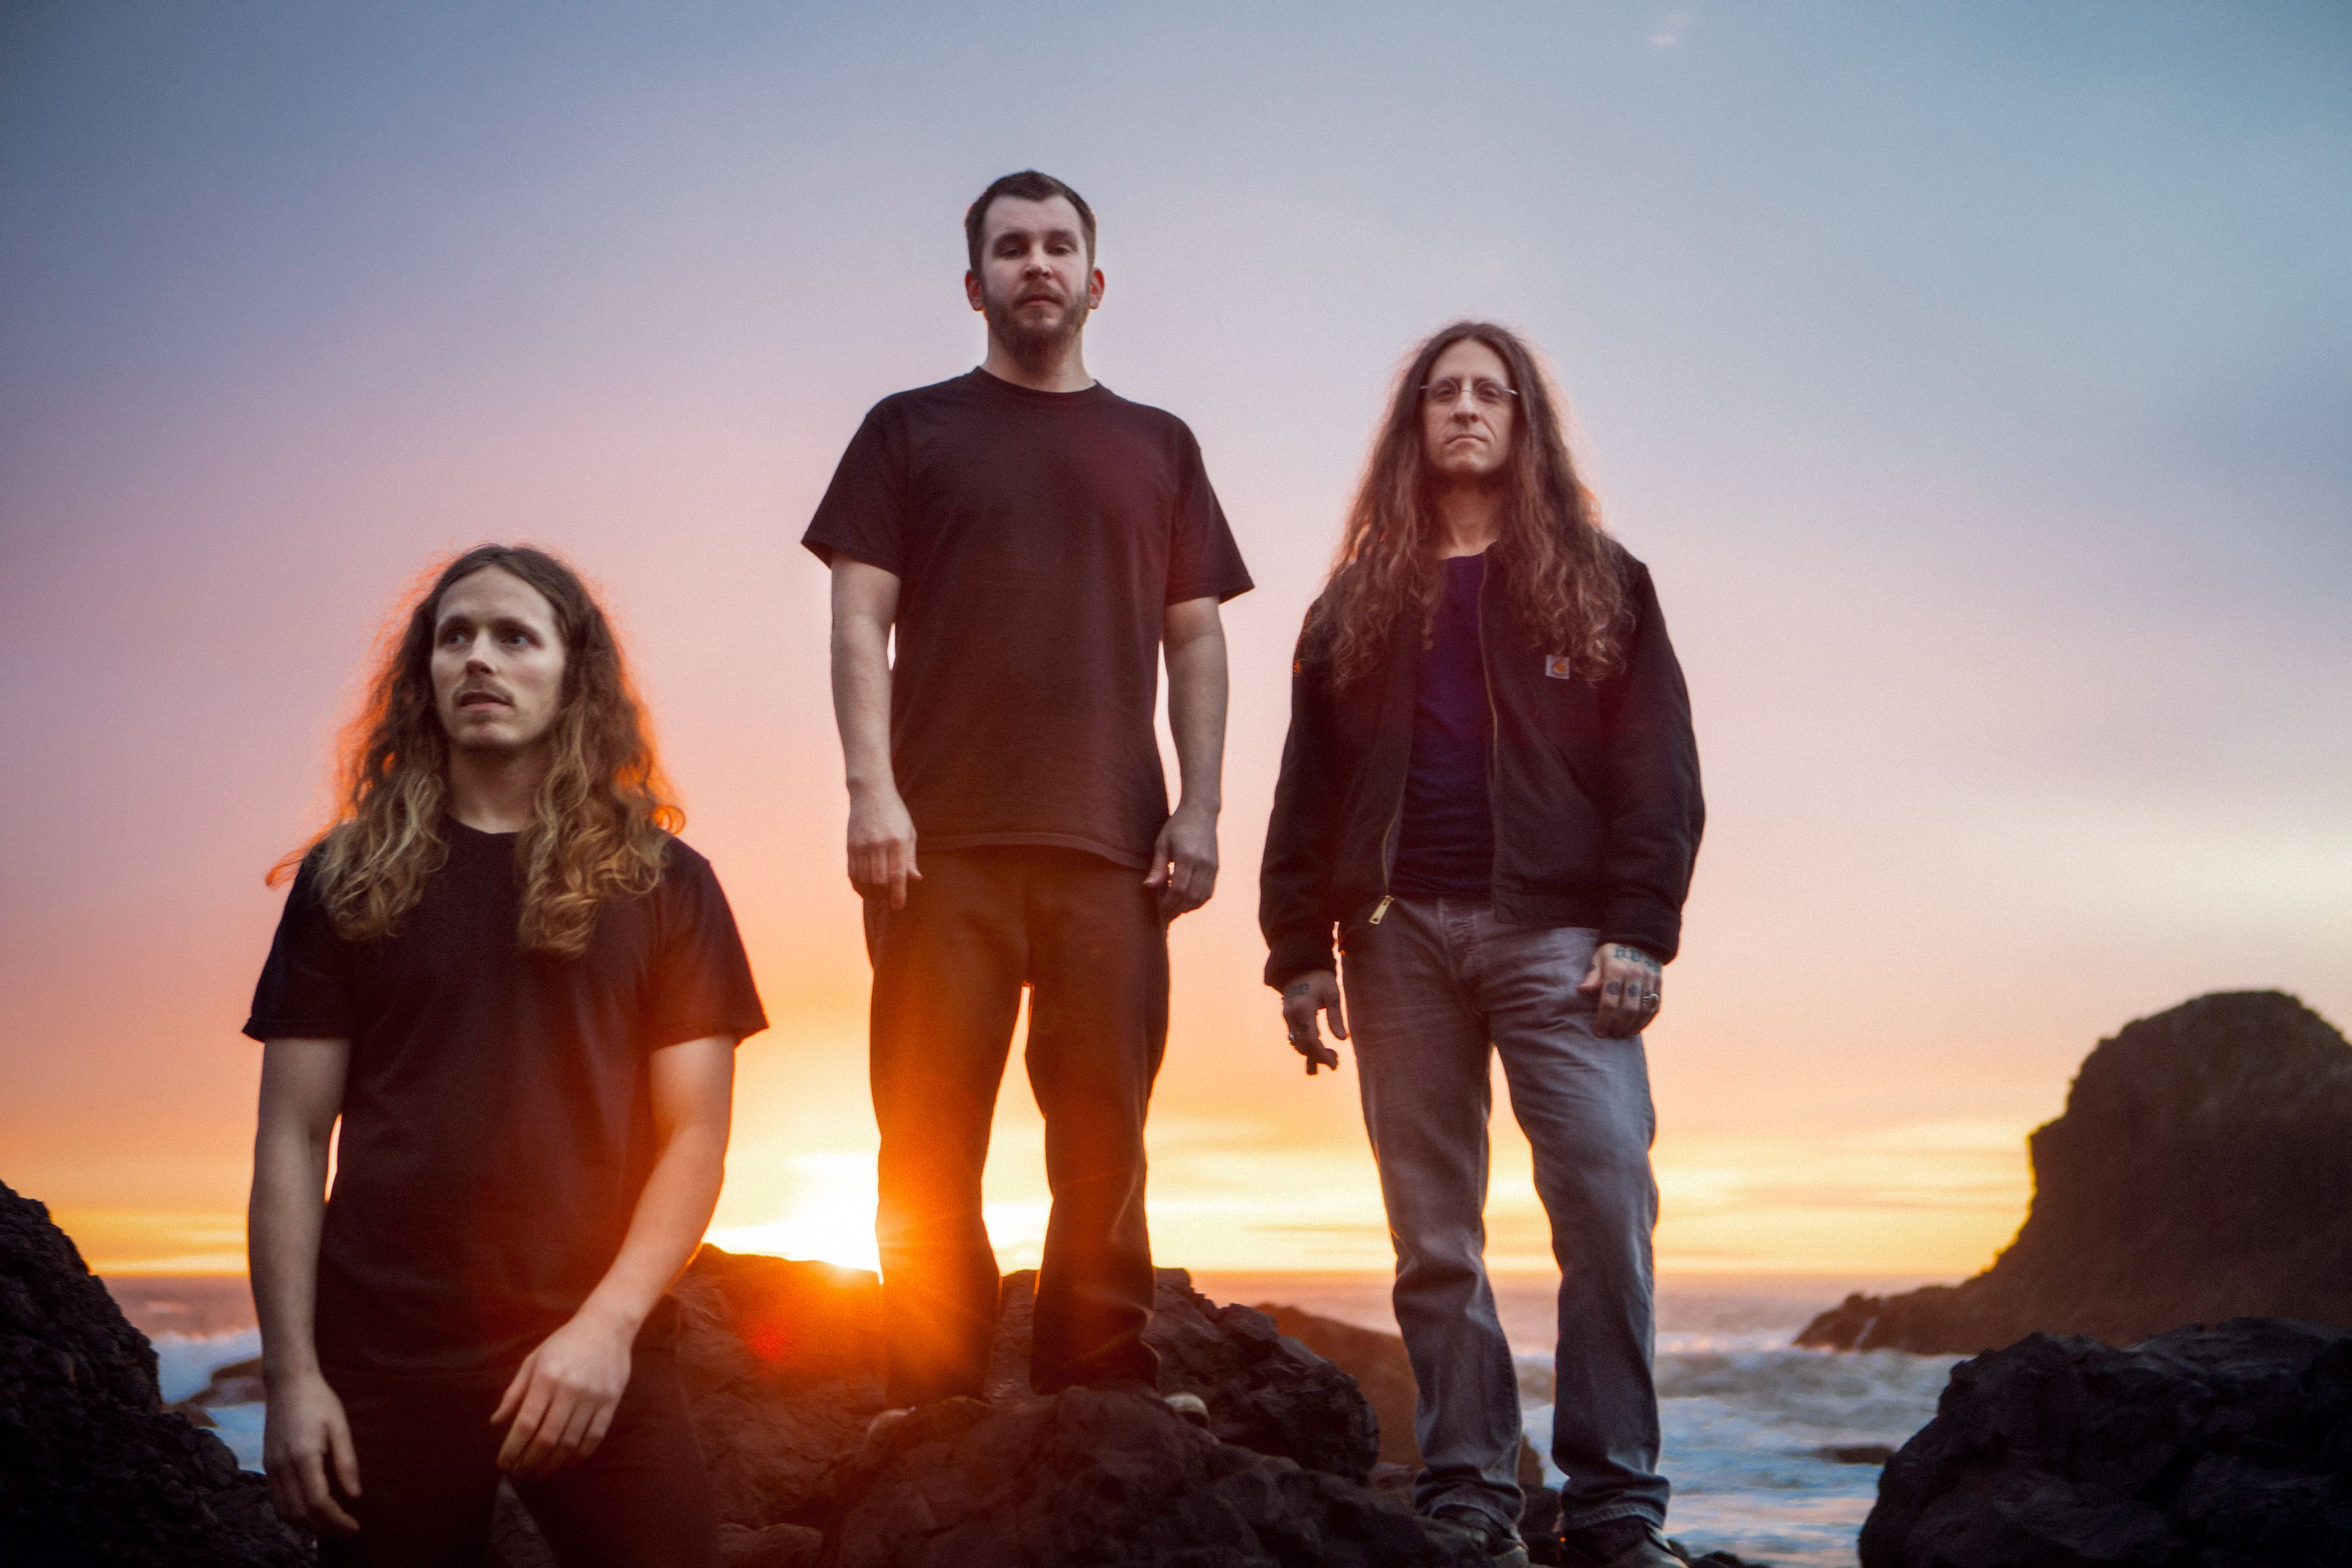 YOB to Head Out With Thrones and Khôrada for Short West Coast Tour